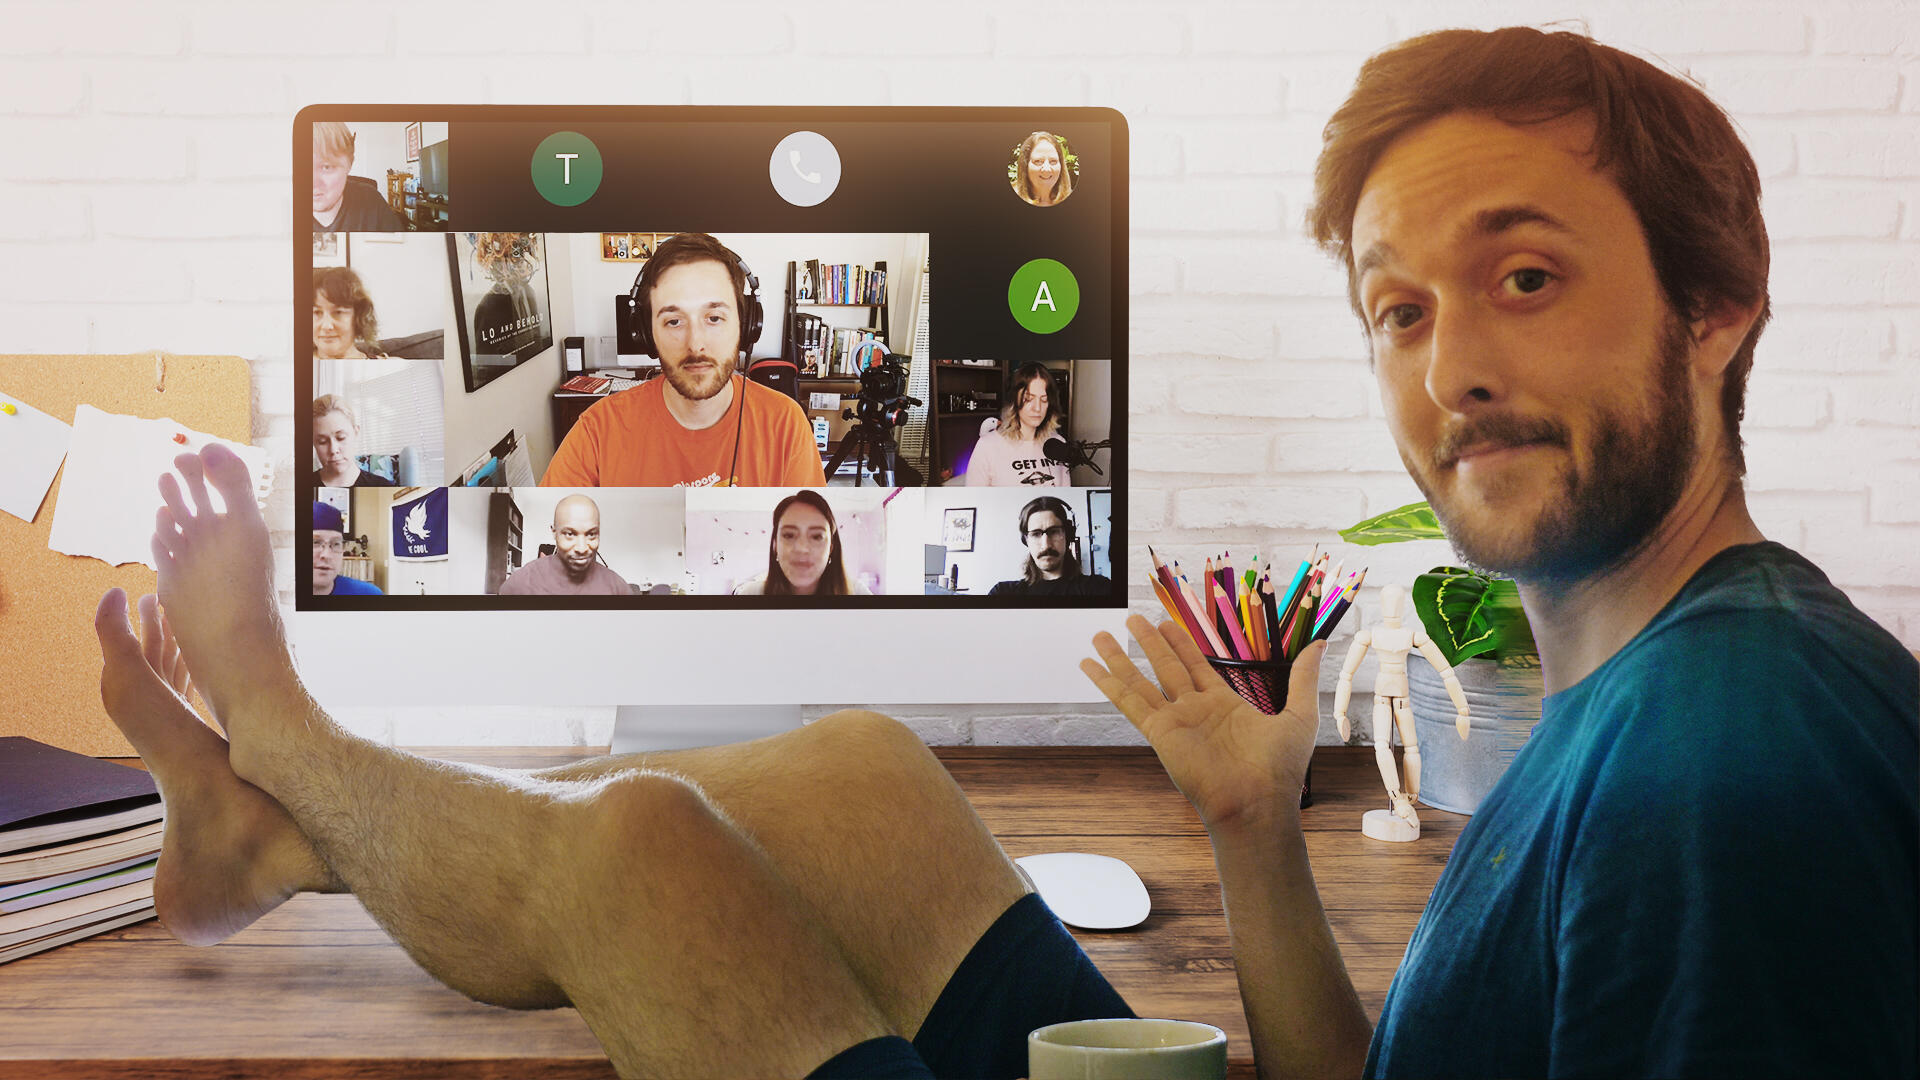 Video: How I automated my presence in video calls for a week (and nobody knew)